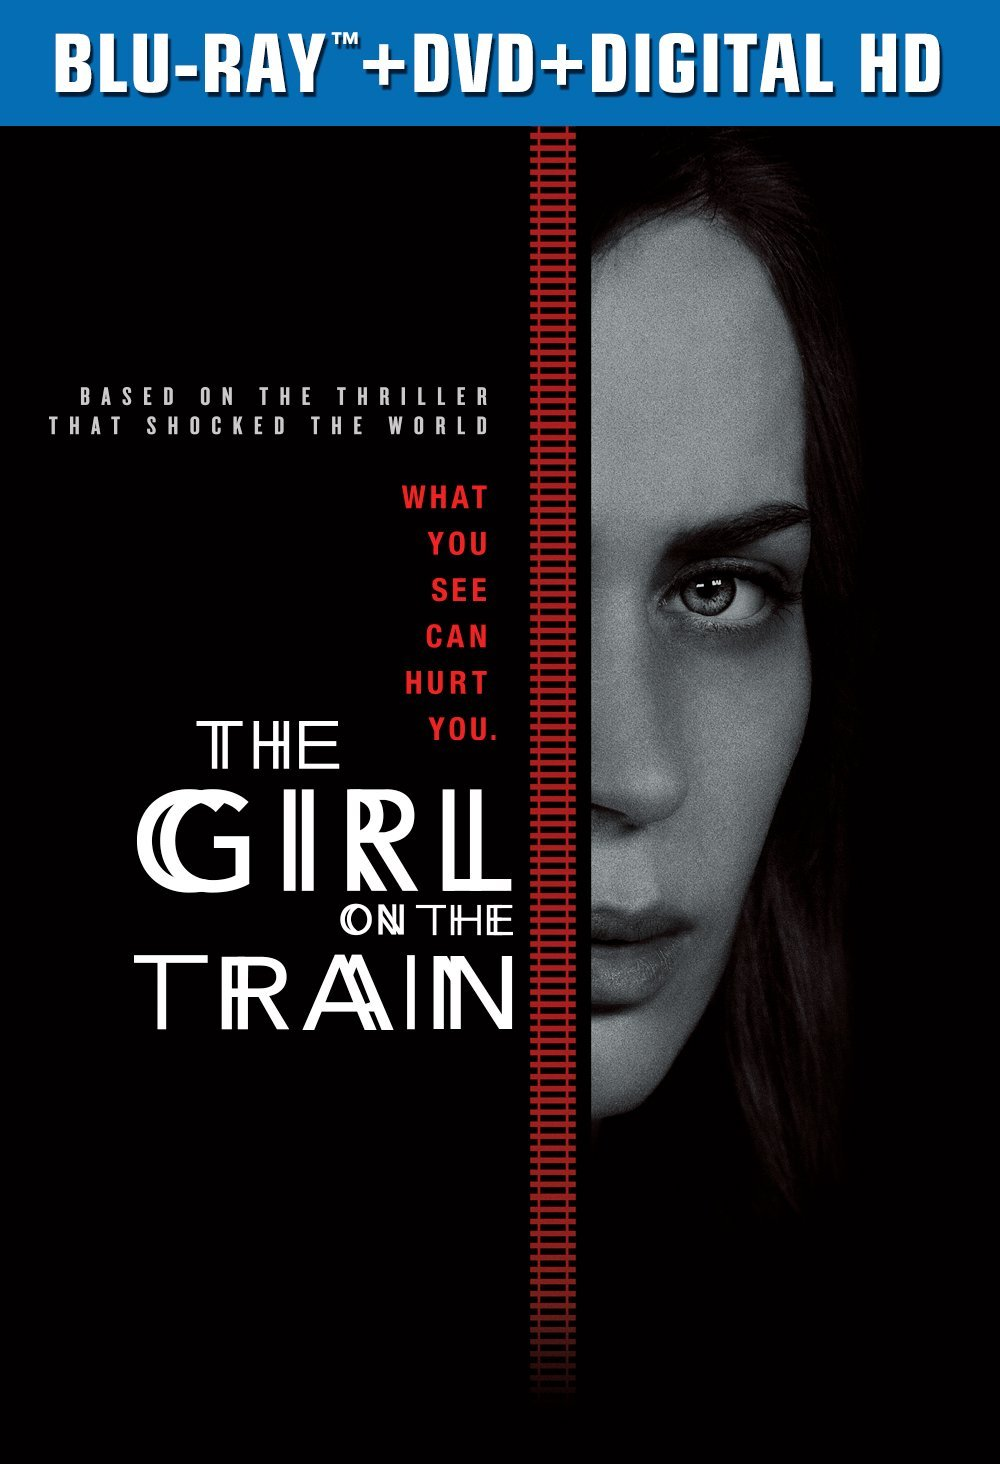 The Girl On The Train [Movie] - The Girl On The Train